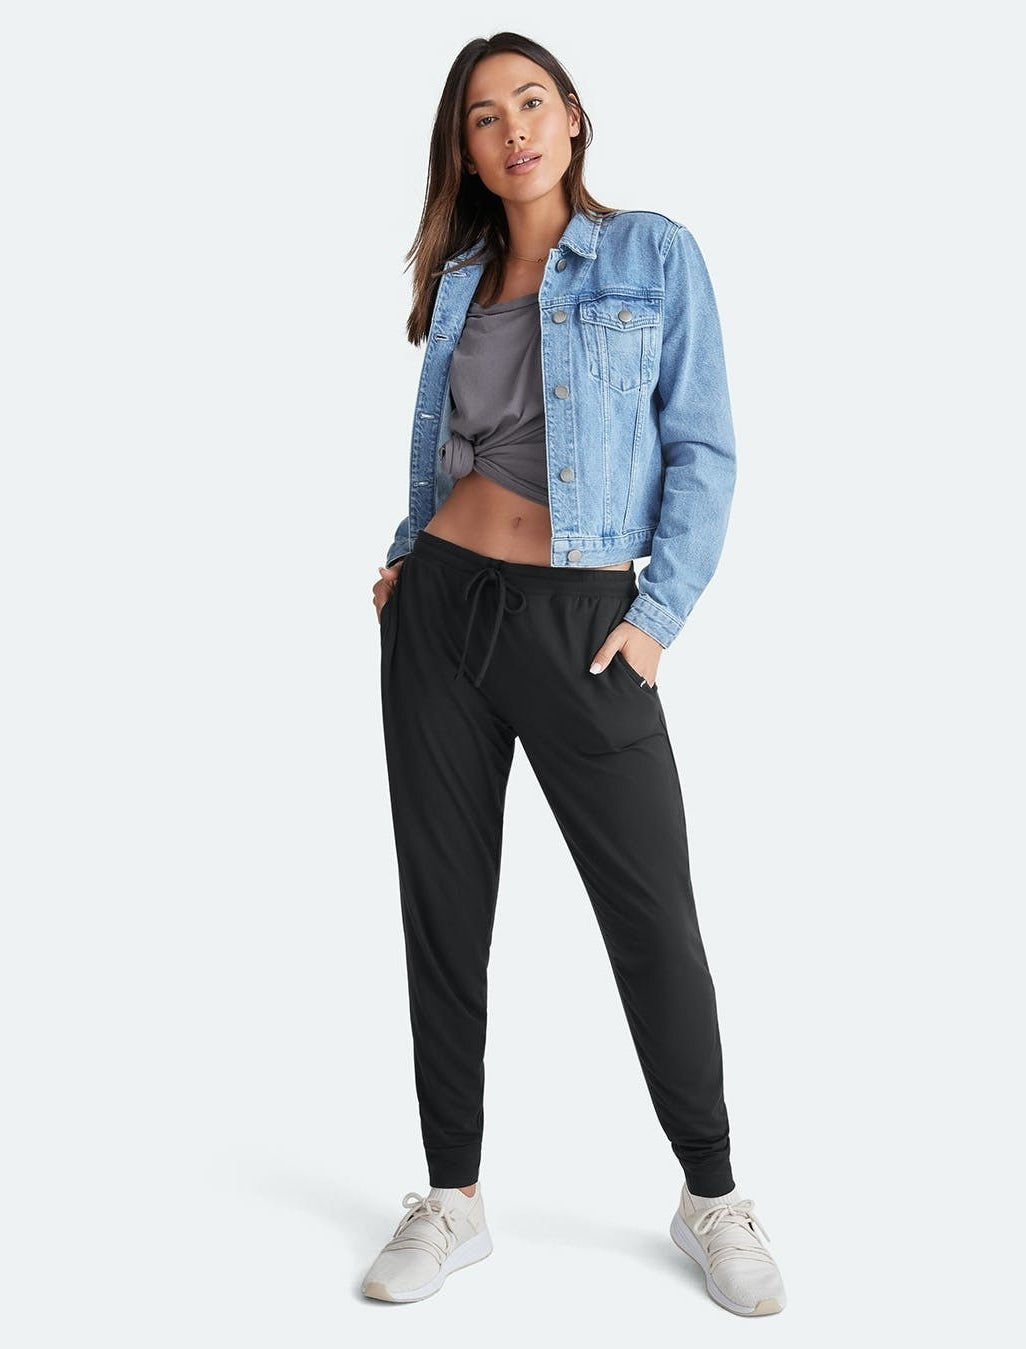 a model wearing black jogger pants with a denim jacket and sneakers